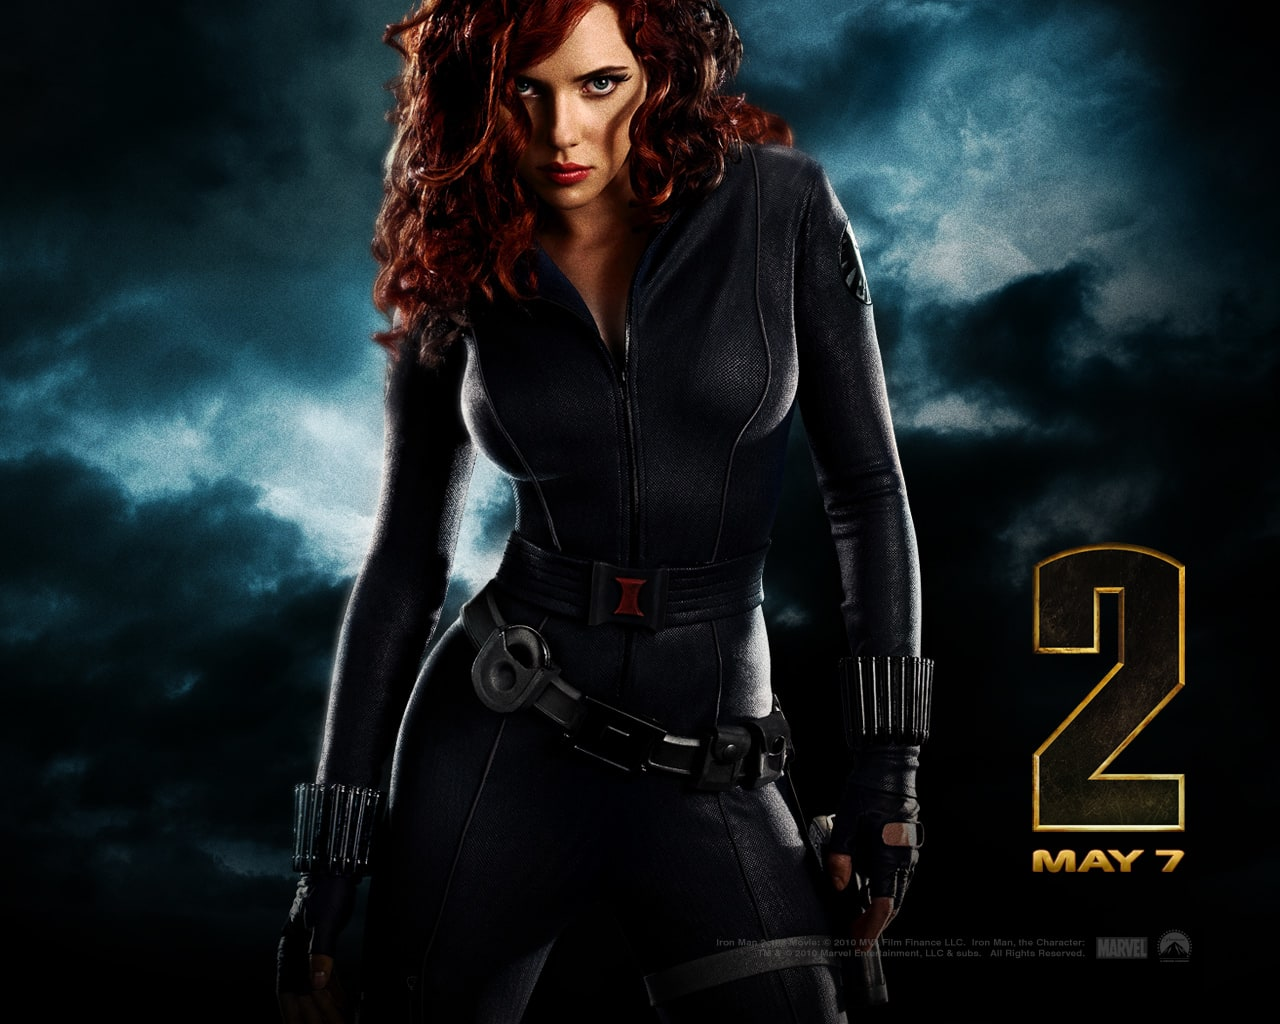 Iron Man 2 Wallpaper: Black Widow